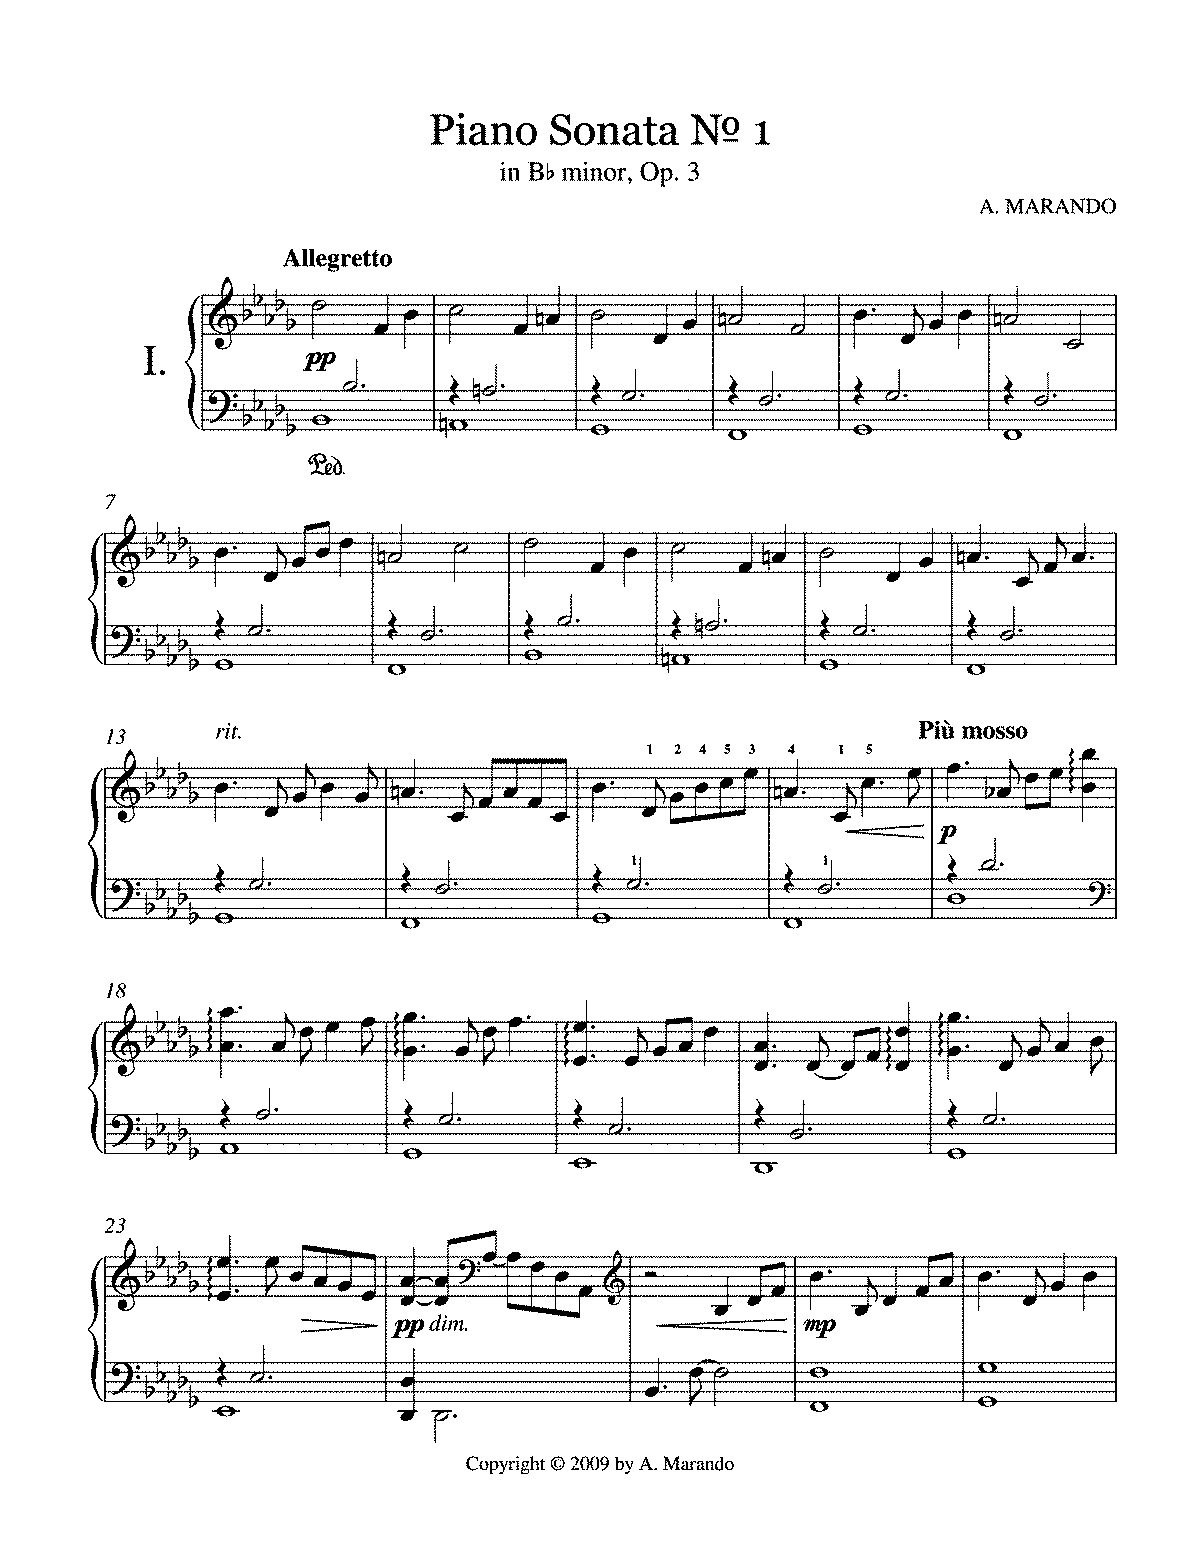 PMLP132872-A. Marando - Op. 3, Piano Sonata No. 1 in B flat minor.pdf